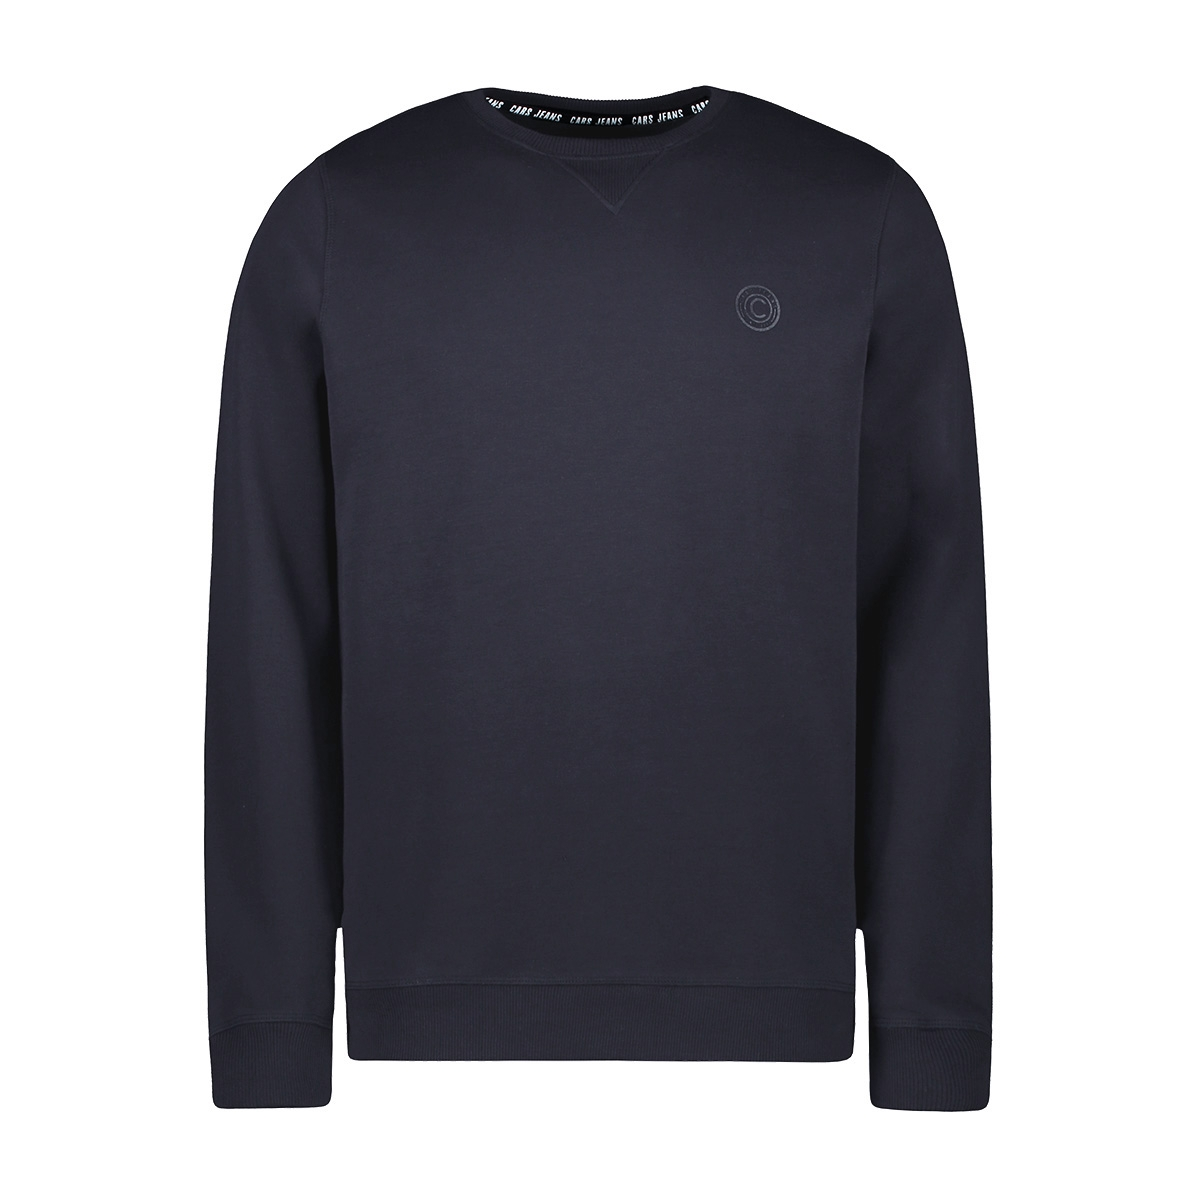 fenners crew neck 45060 cars sweater 12 navy